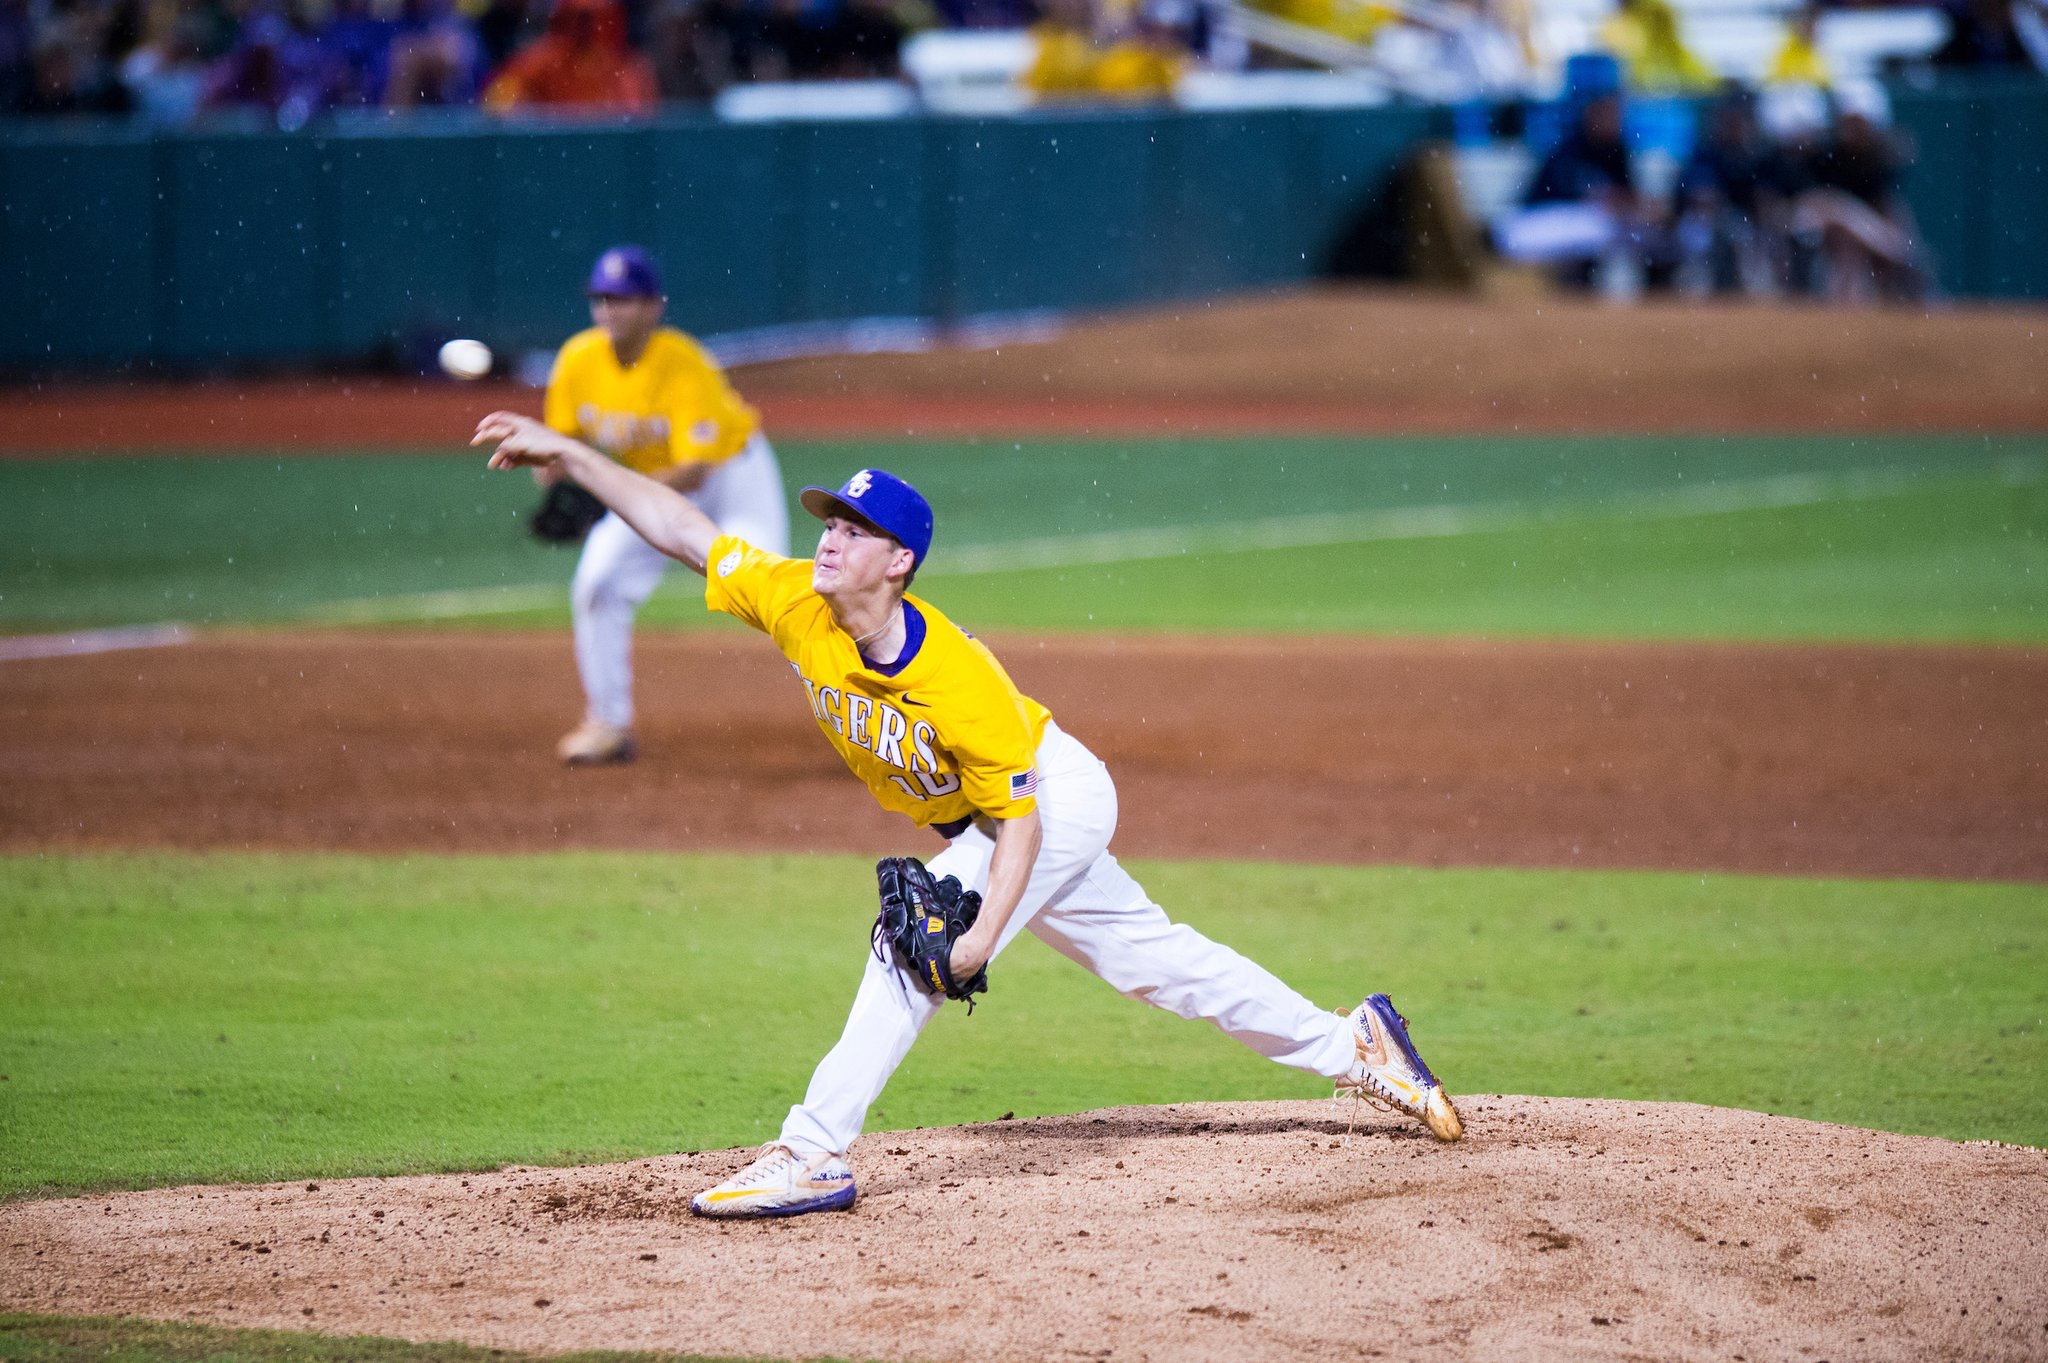 Paul Mainieri makes pitching rotation changes